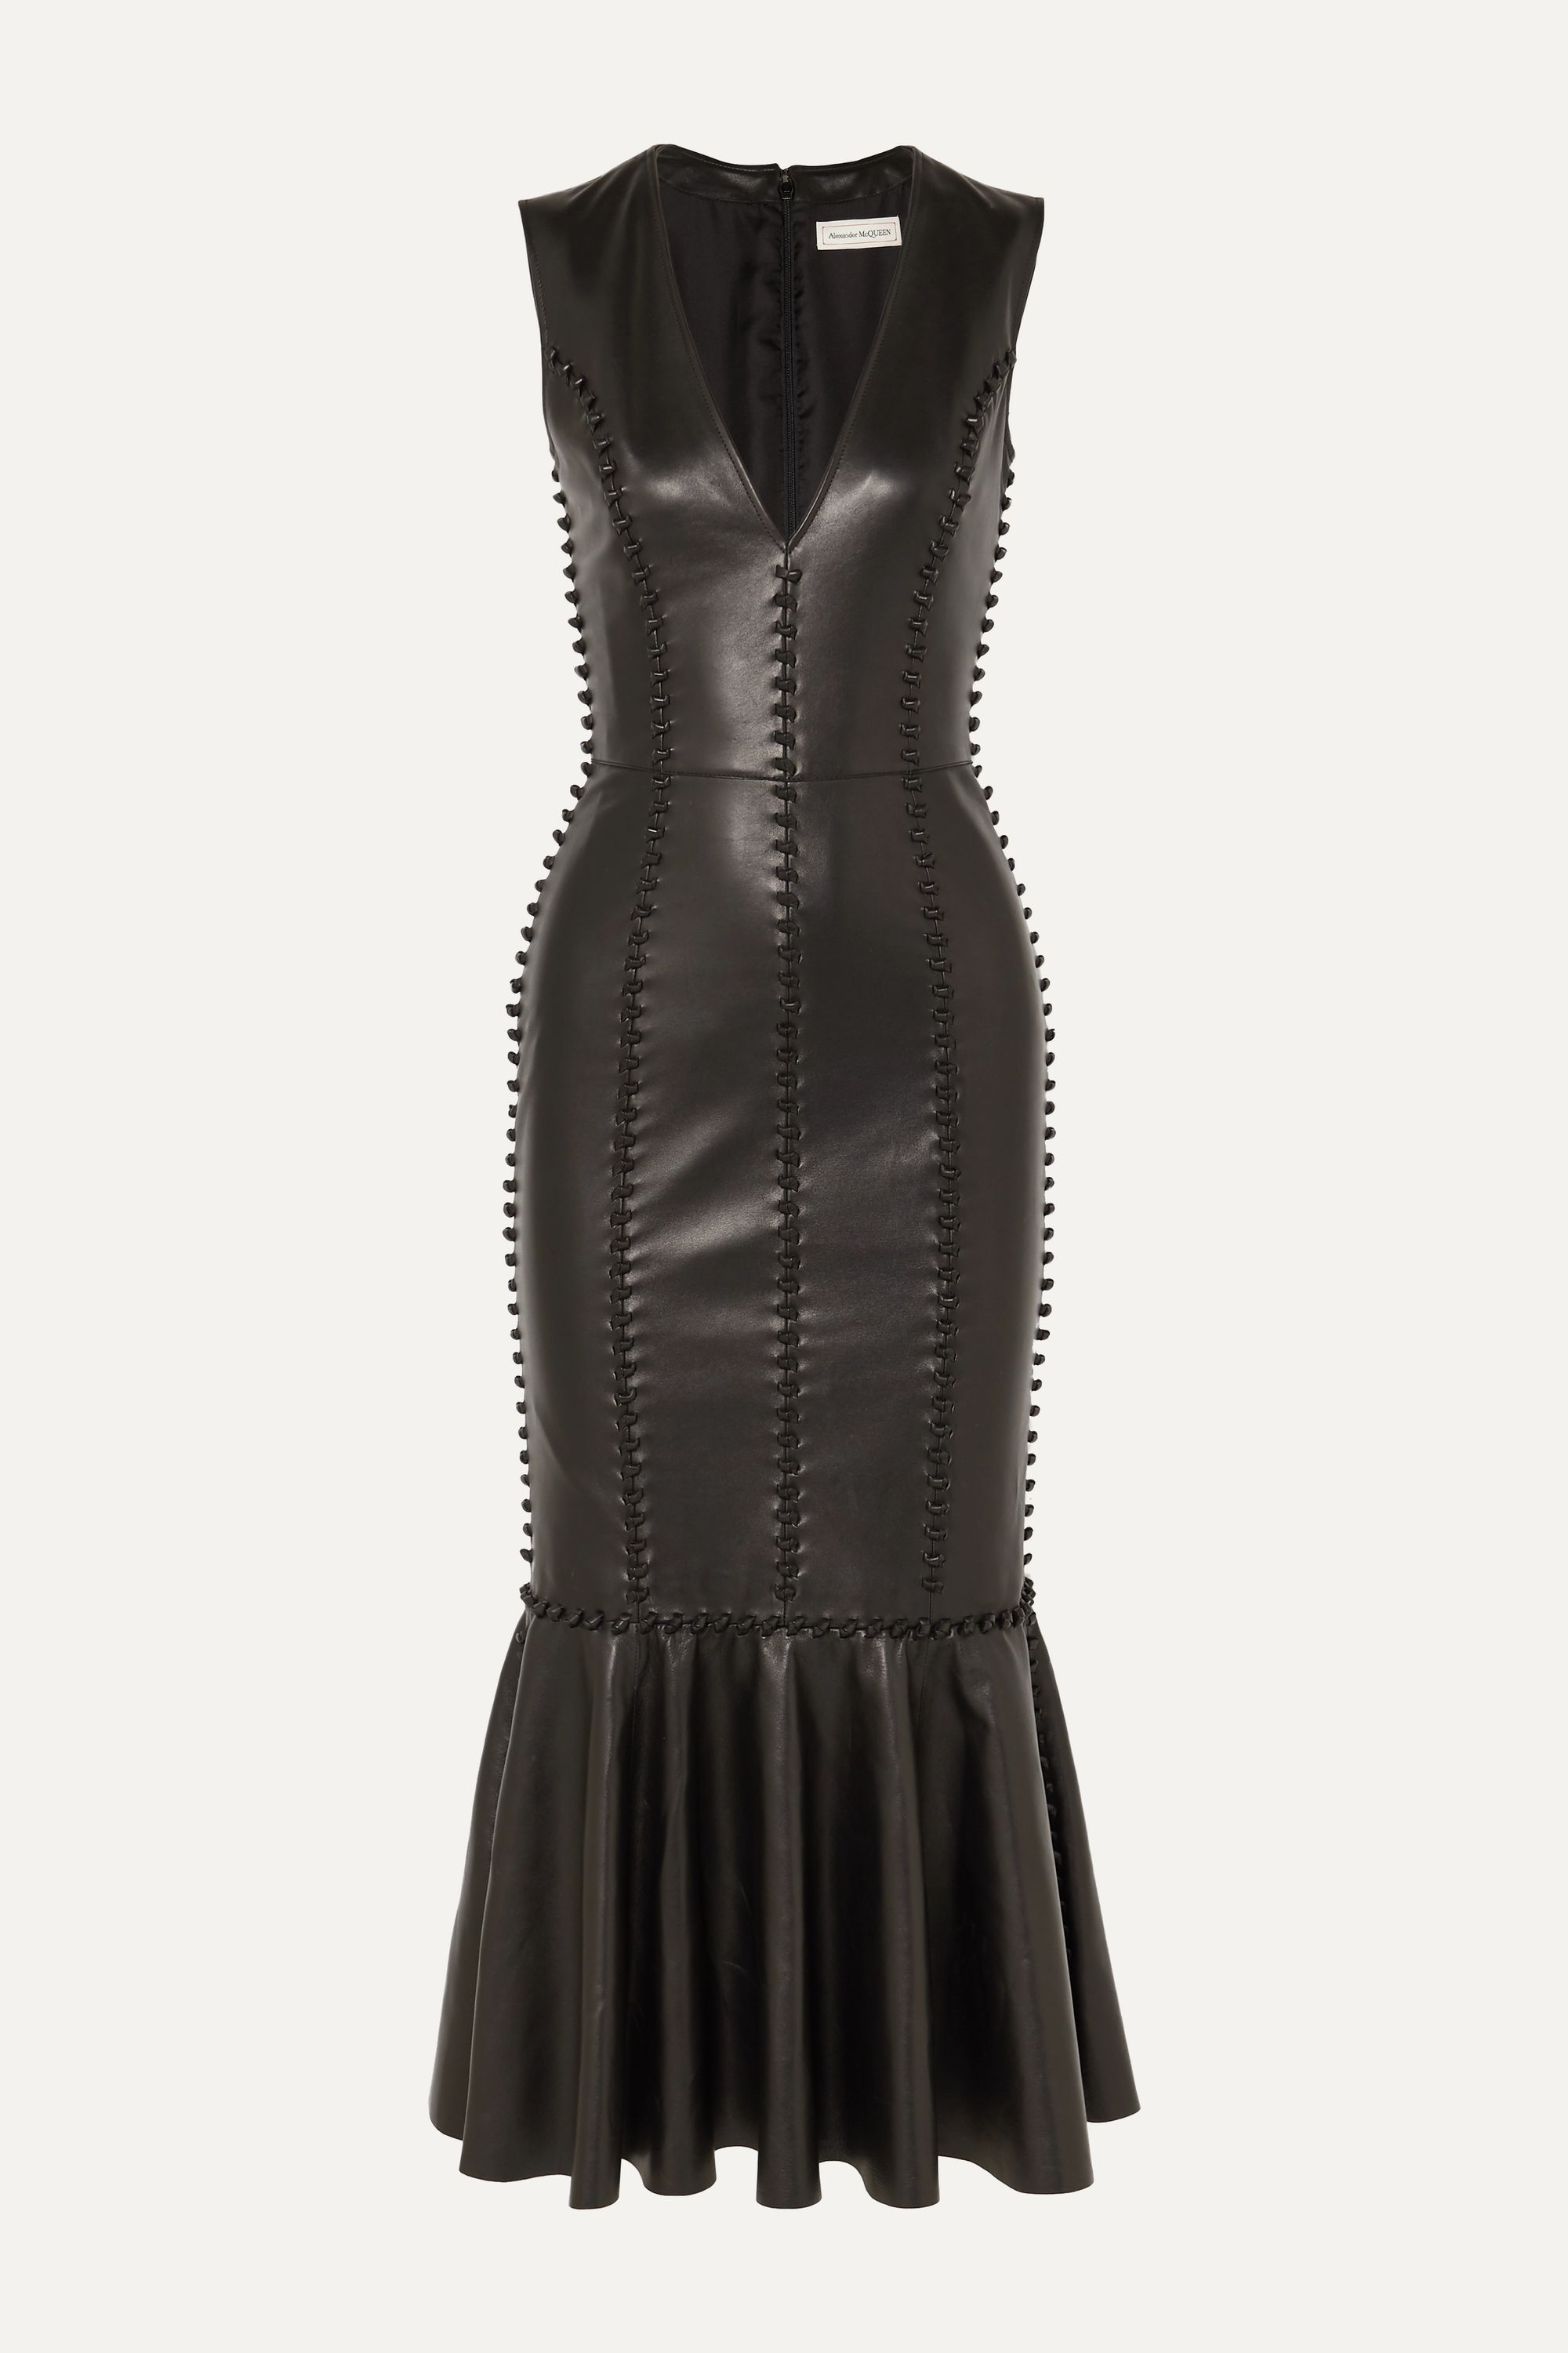 Alexander McQueen Knot-detailed leather midi dress